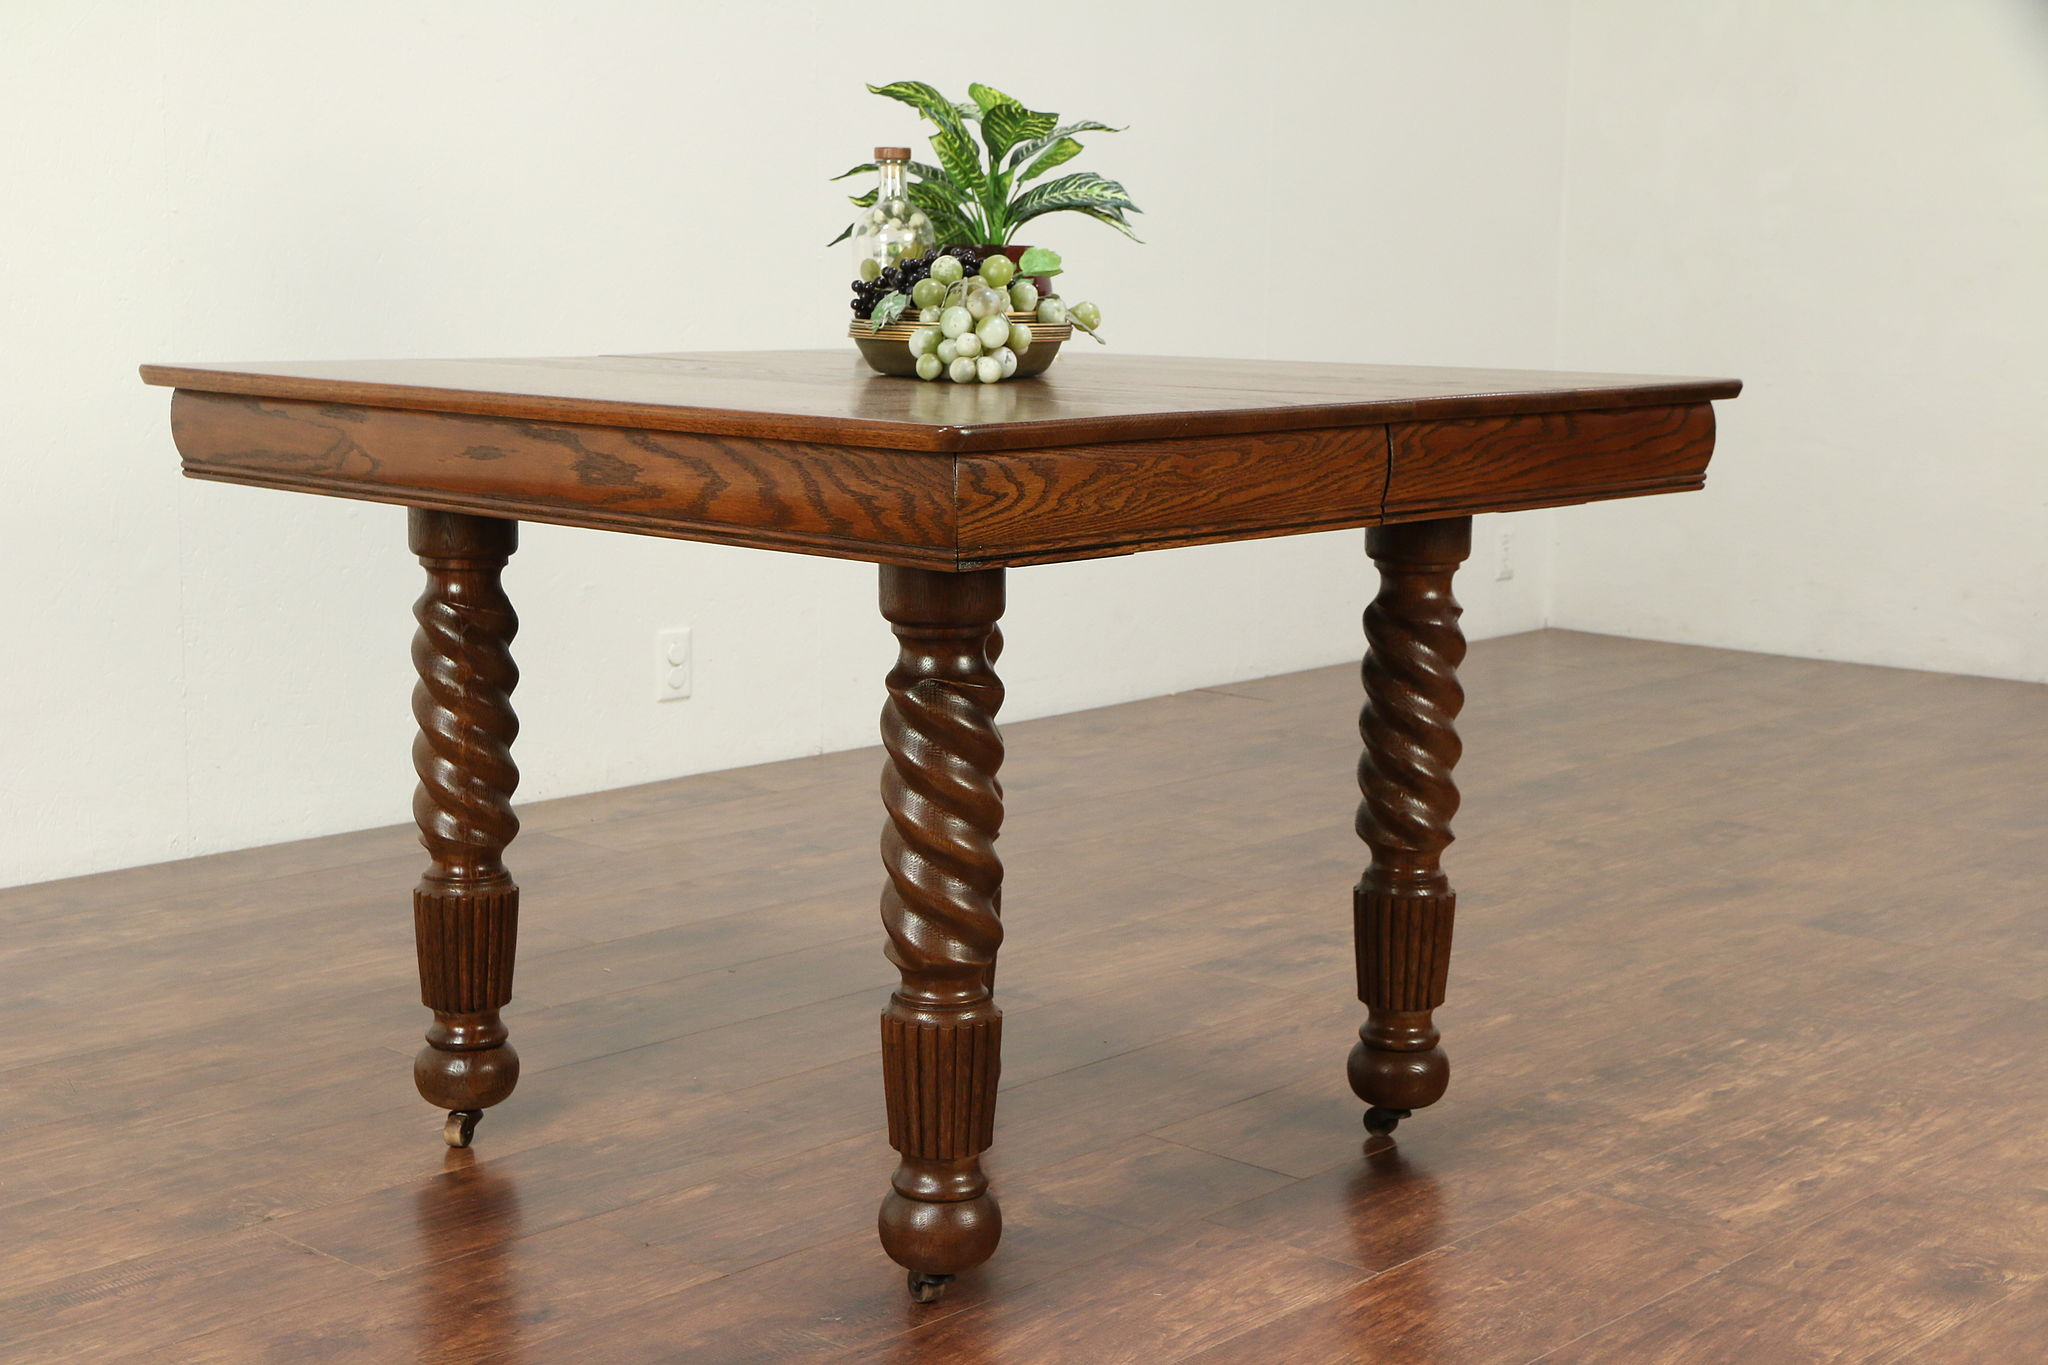 Oak Antique Victorian Square Dining Table 2 Leaves